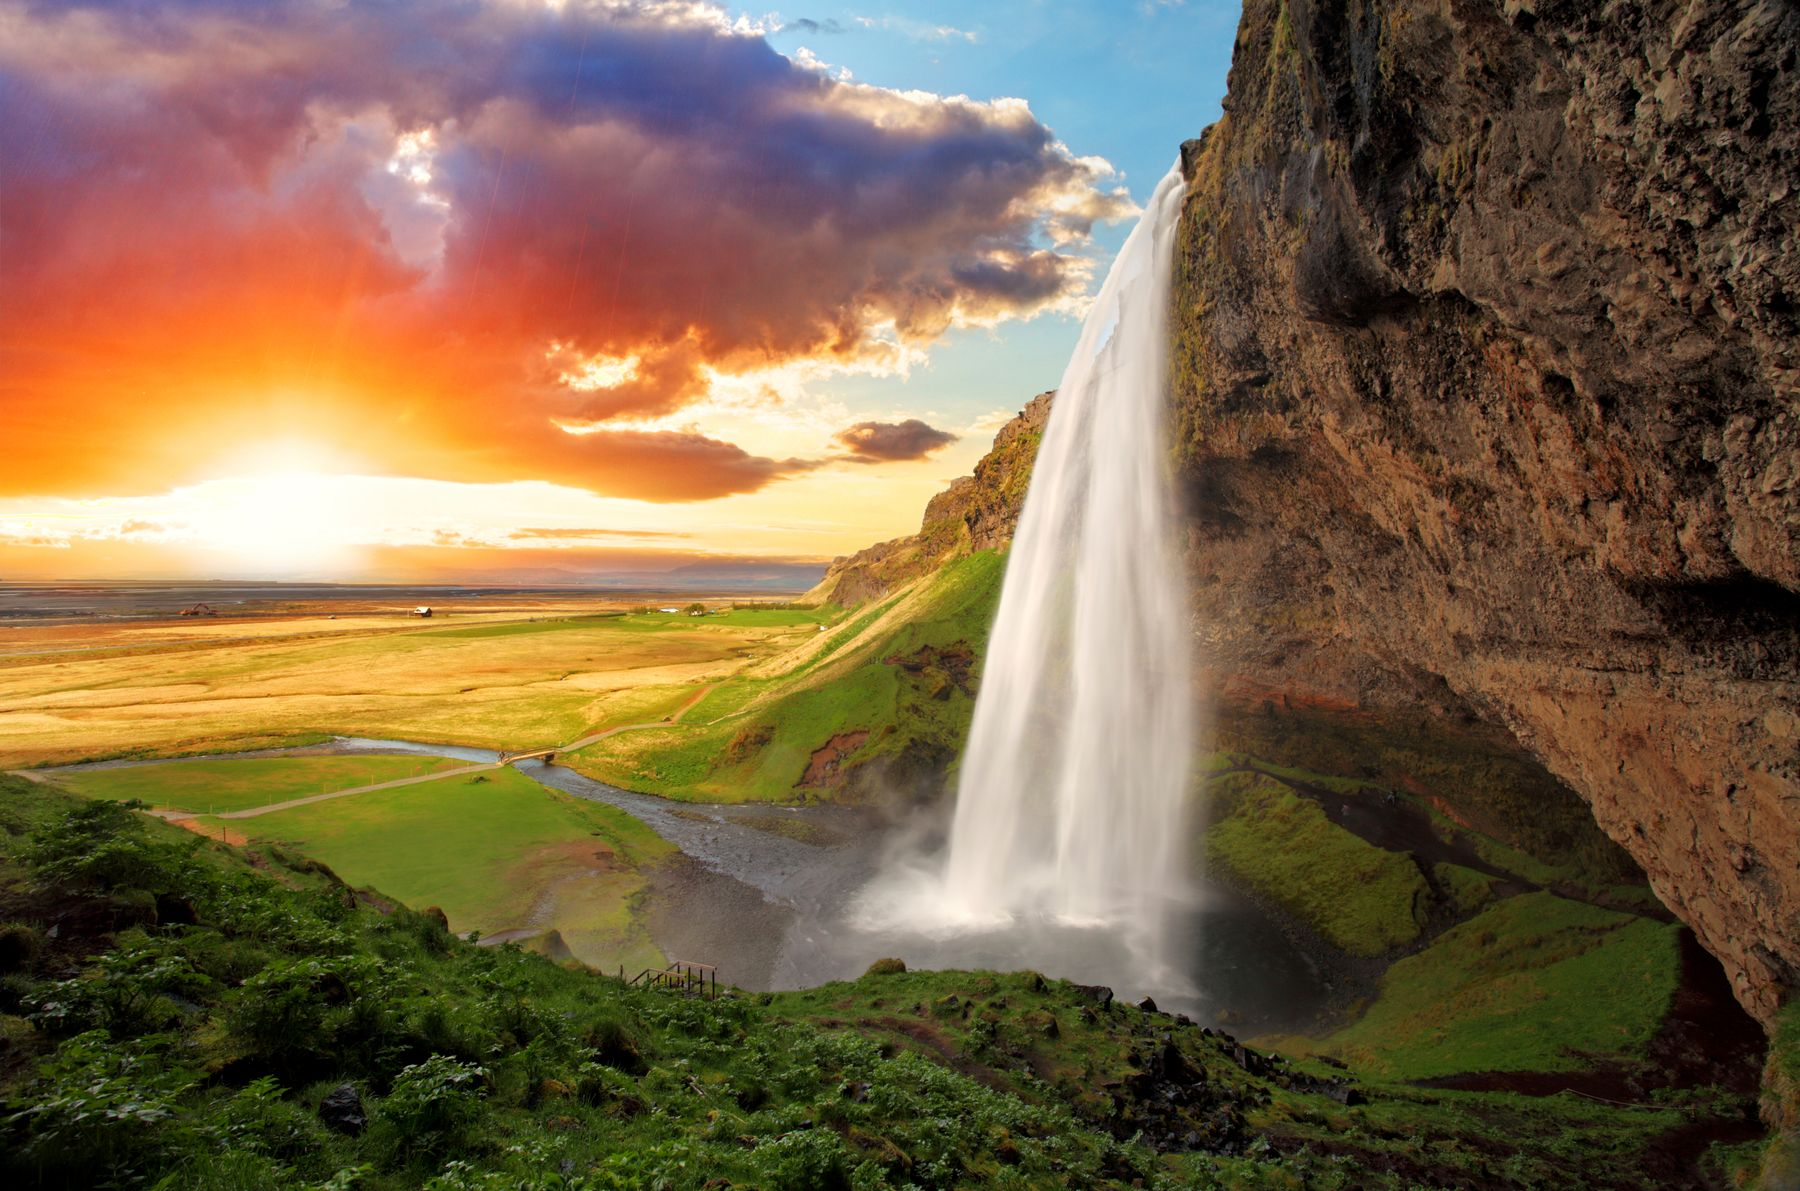 Sunset over Iceland landscape with waterfall